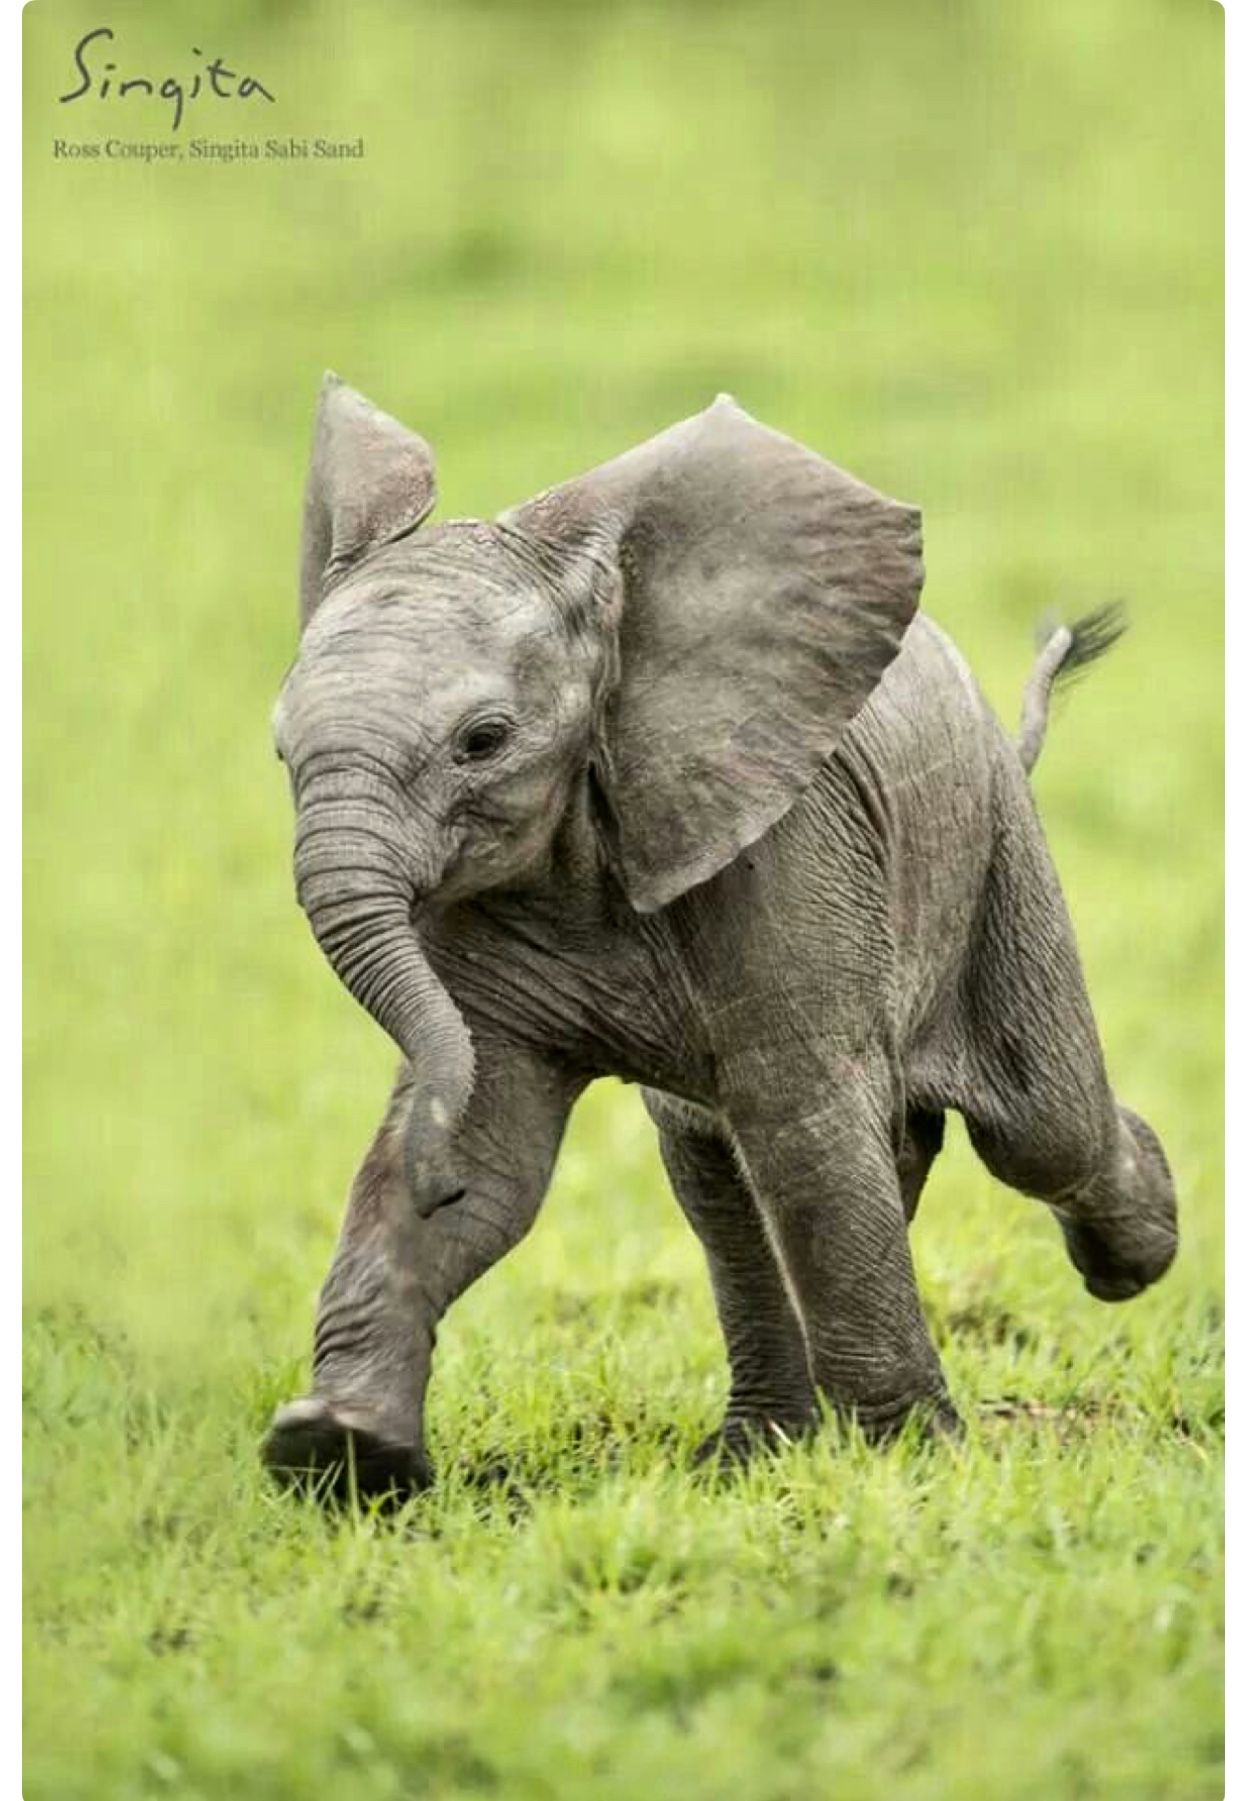 Baby Elephant In A Hurry So Cute Baby Animals Cute Baby Elephant